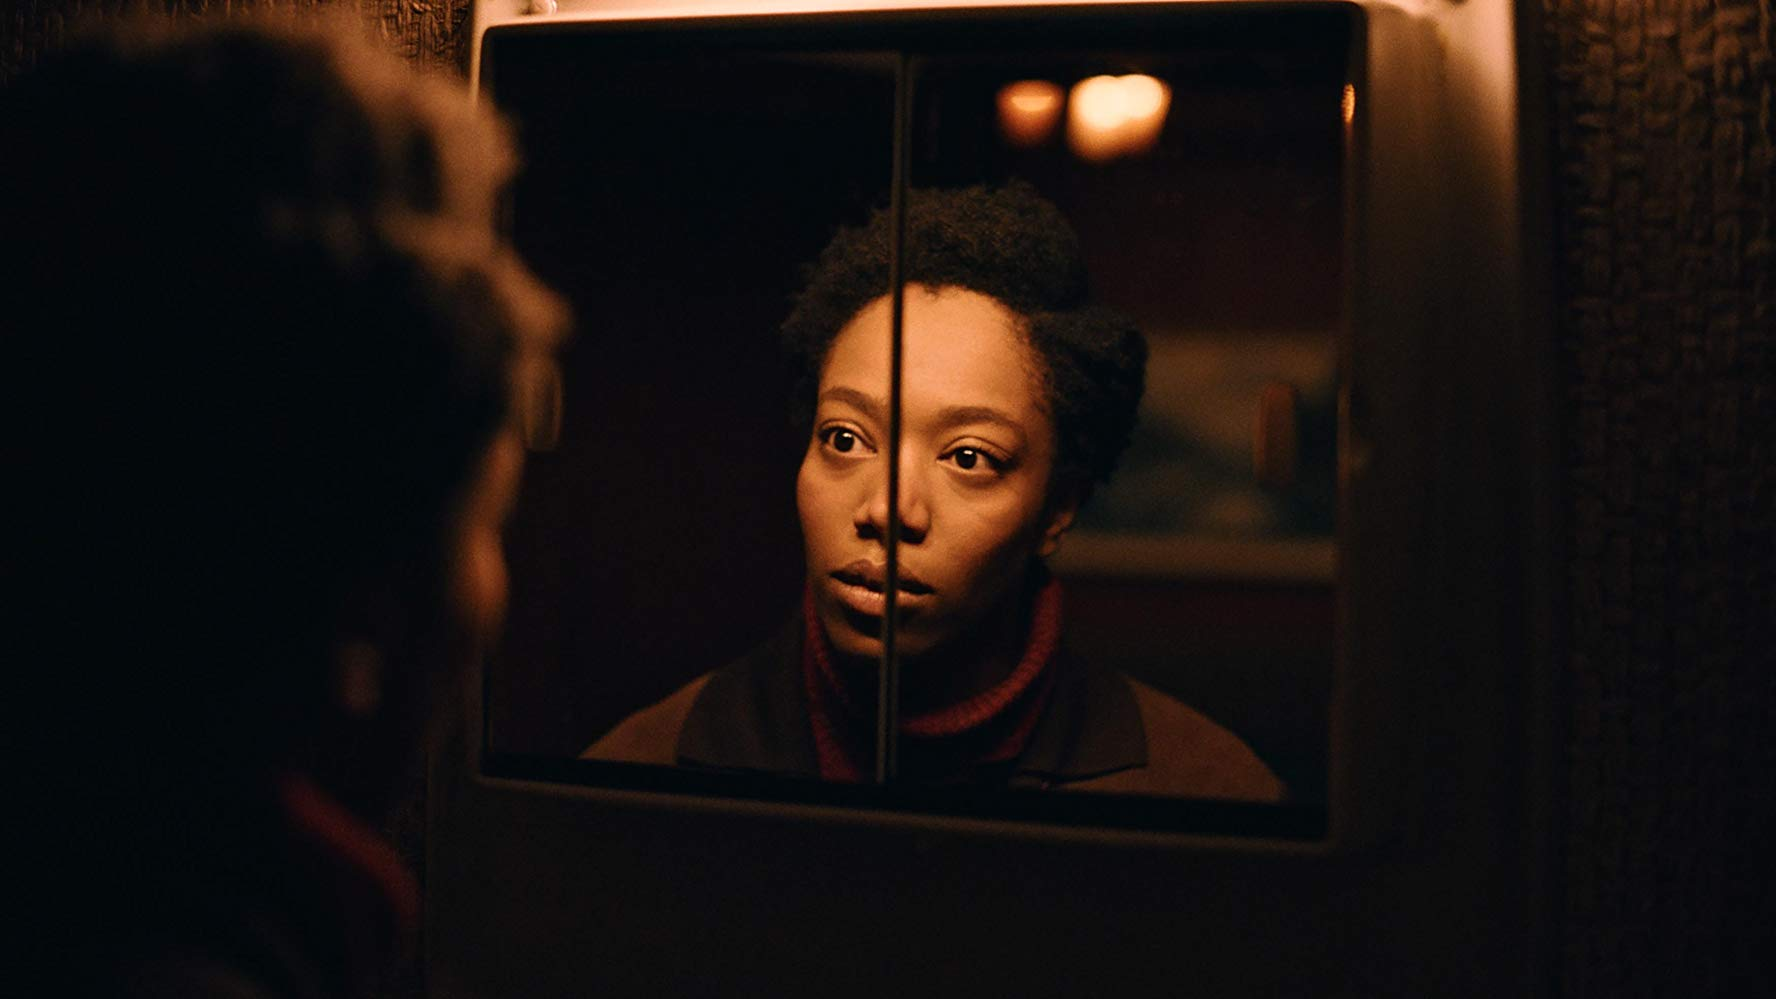 Naomi Ackie als Bonnie in der zweiten Staffel von The End of the Fucking World.